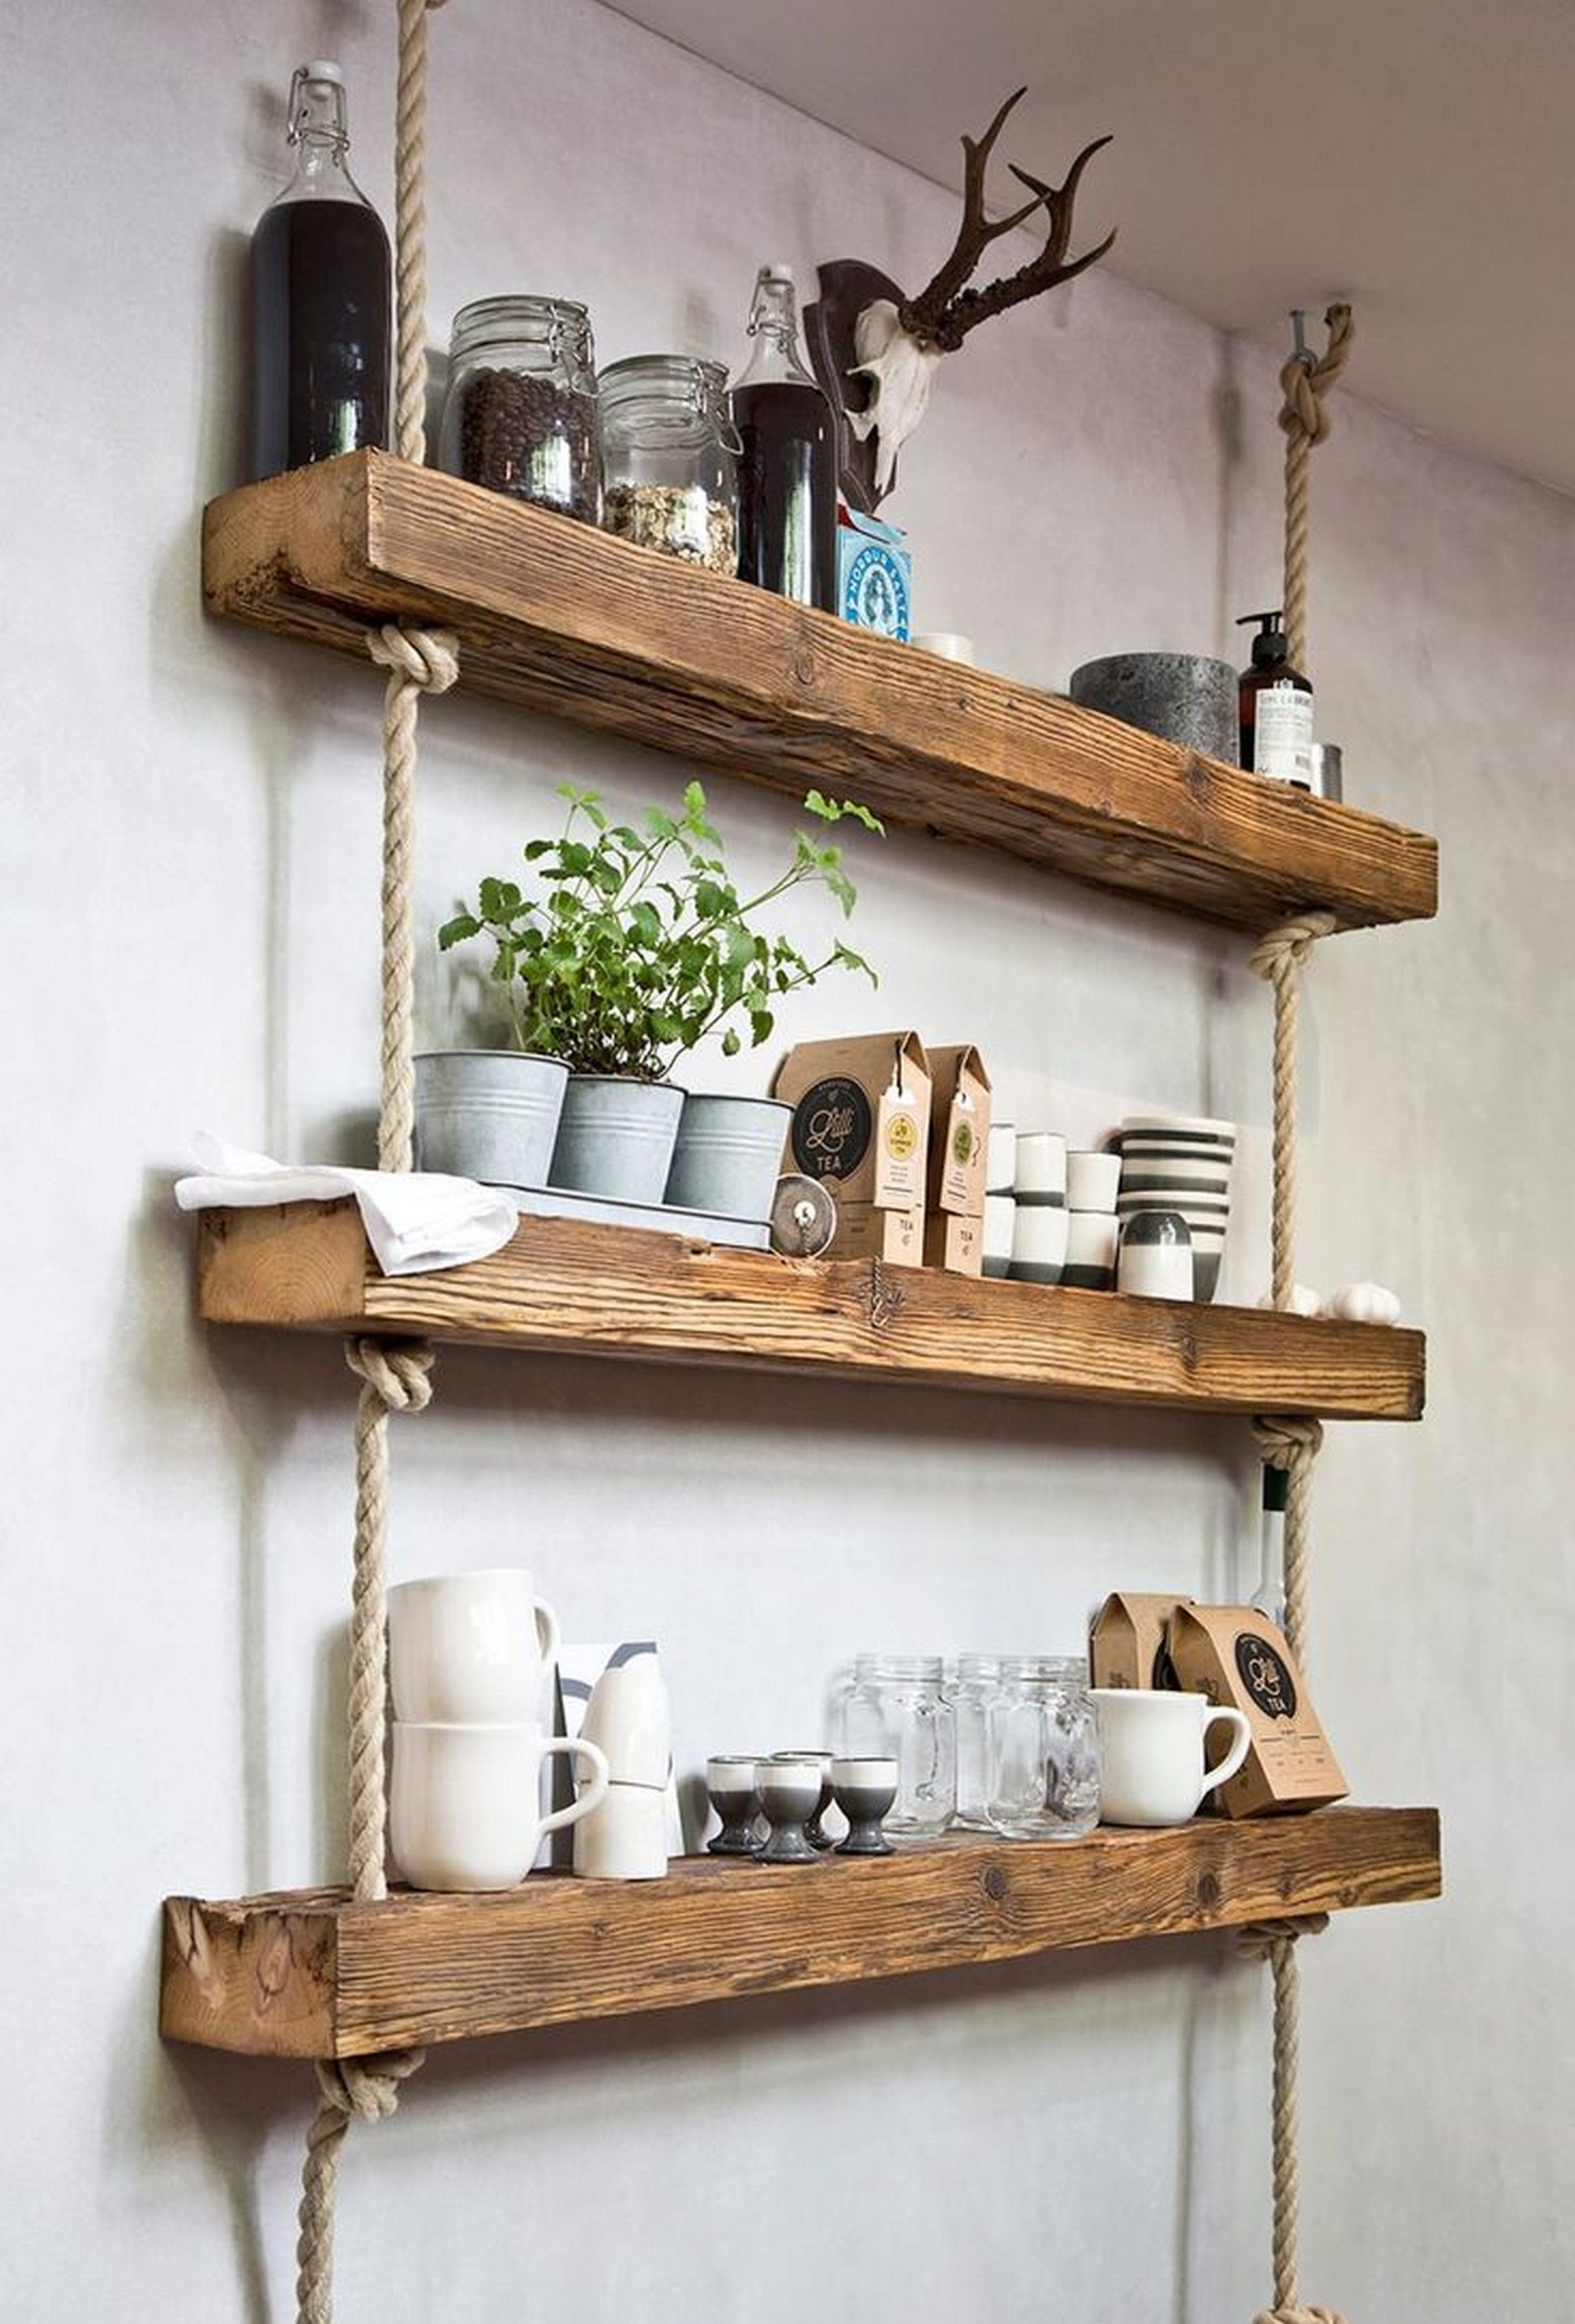 Easy and stylish diy wooden wall shelves ideas wooden - Bedroom wall shelves decorating ideas ...